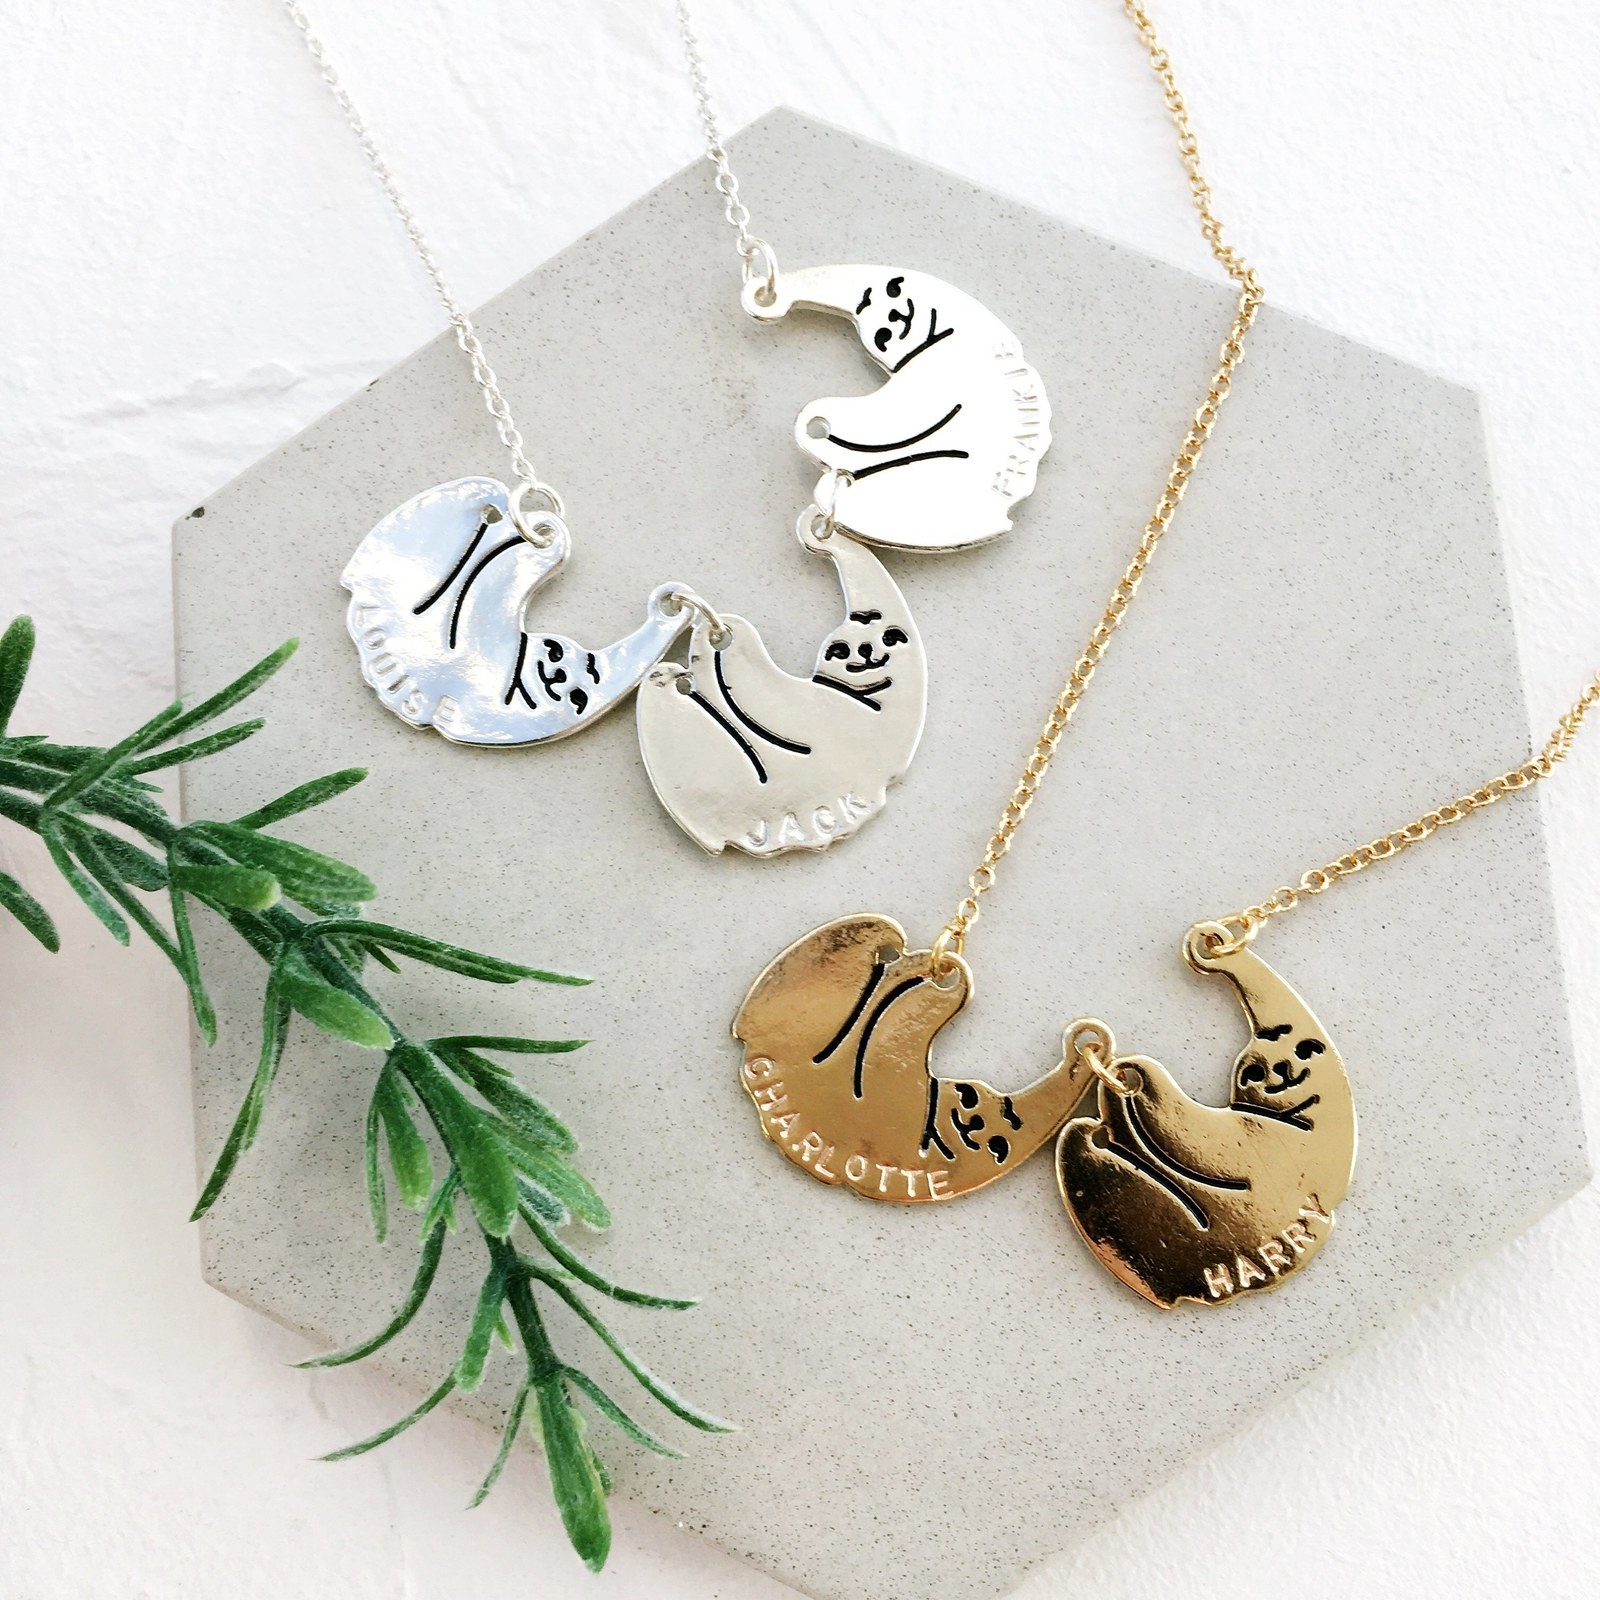 necklaces with sloth charms with names engraved